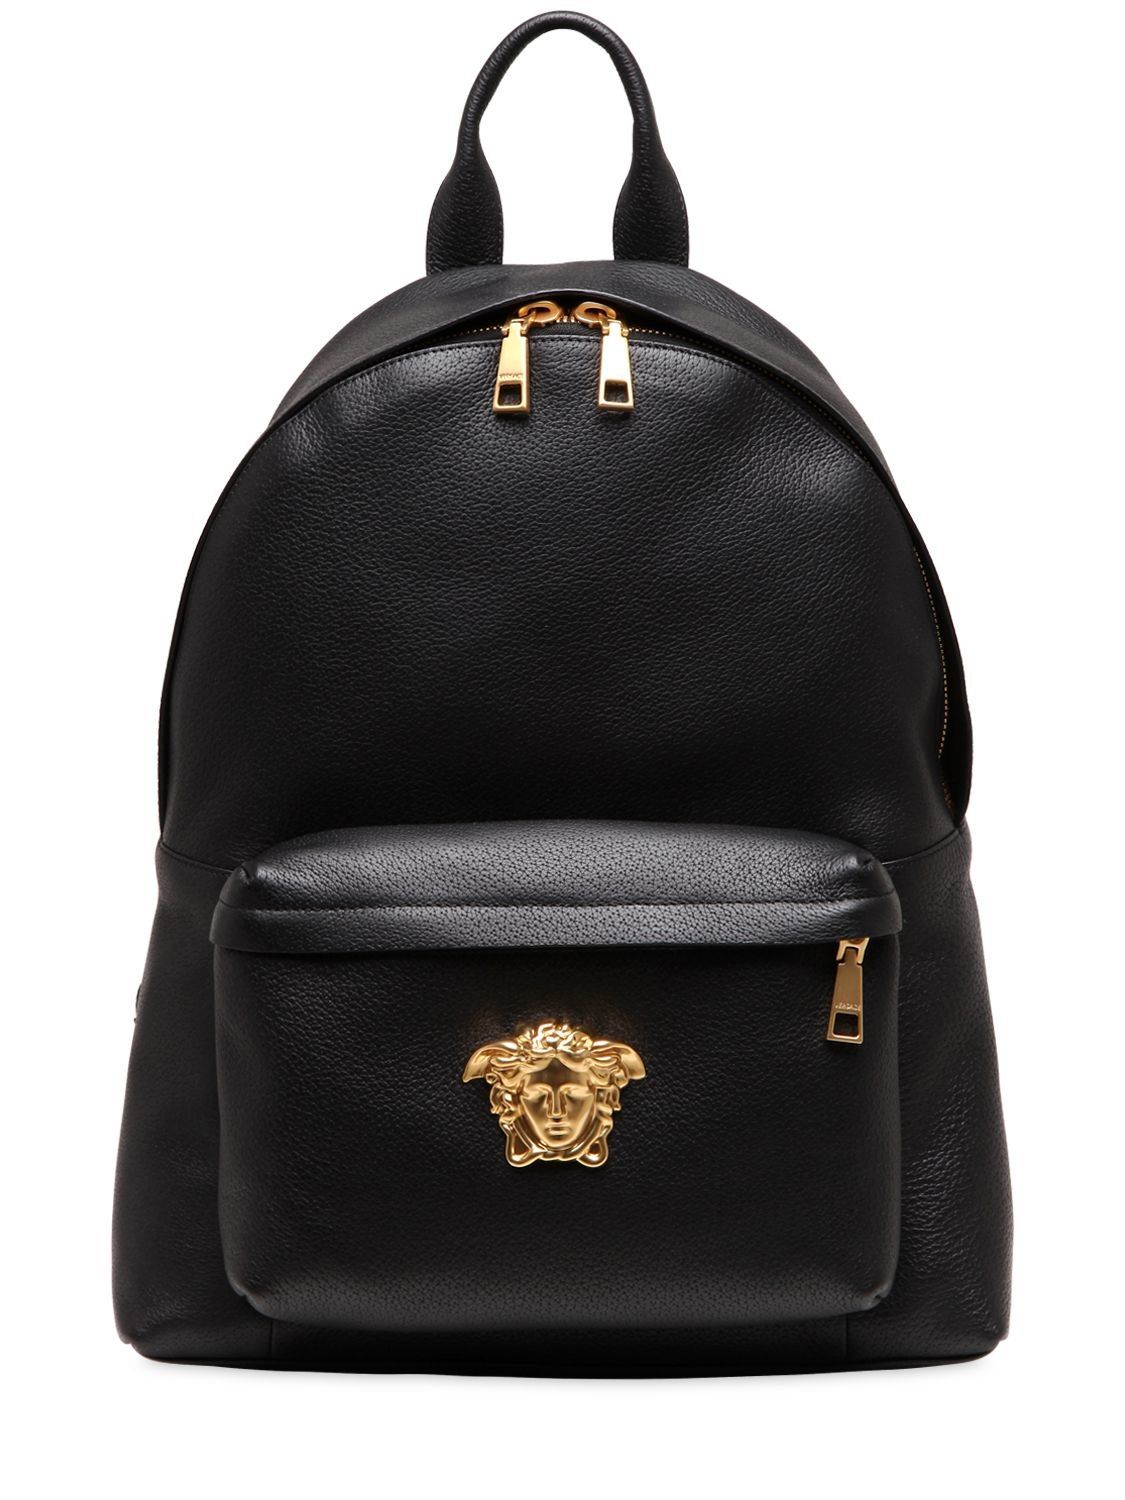 8c83b1c61a VERSACE MEDUSA LEATHER BACKPACK.  versace  bags  leather  lining  backpacks